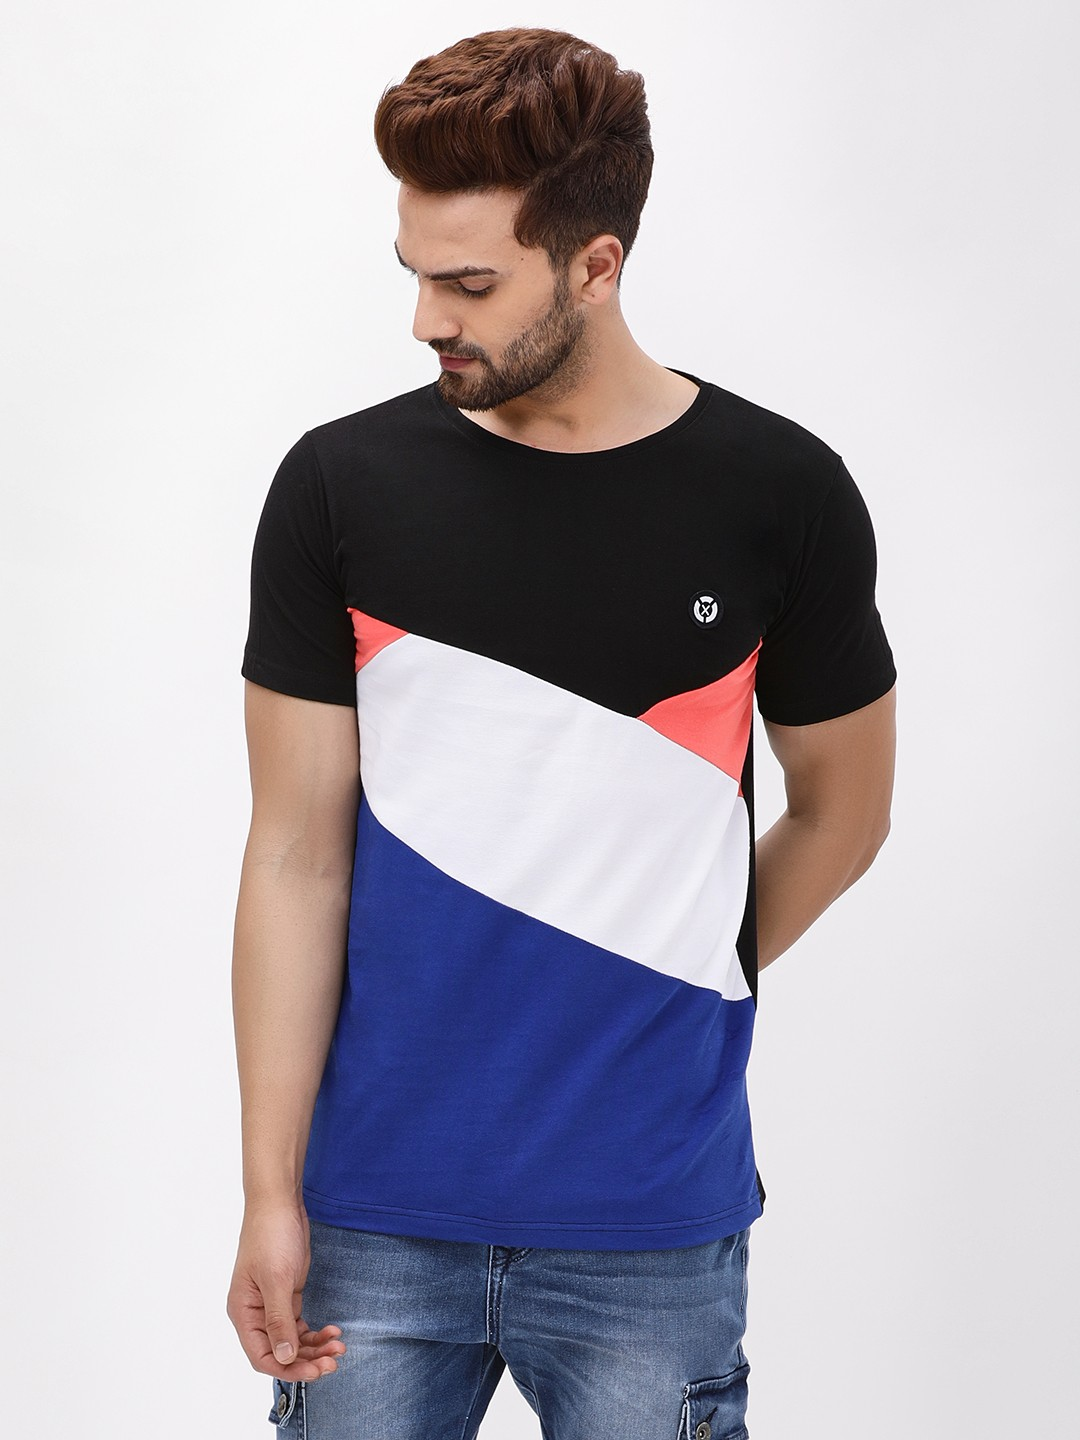 X.O.Y.O BLACK/BLUE Colour Block Slim T-Shirt 1